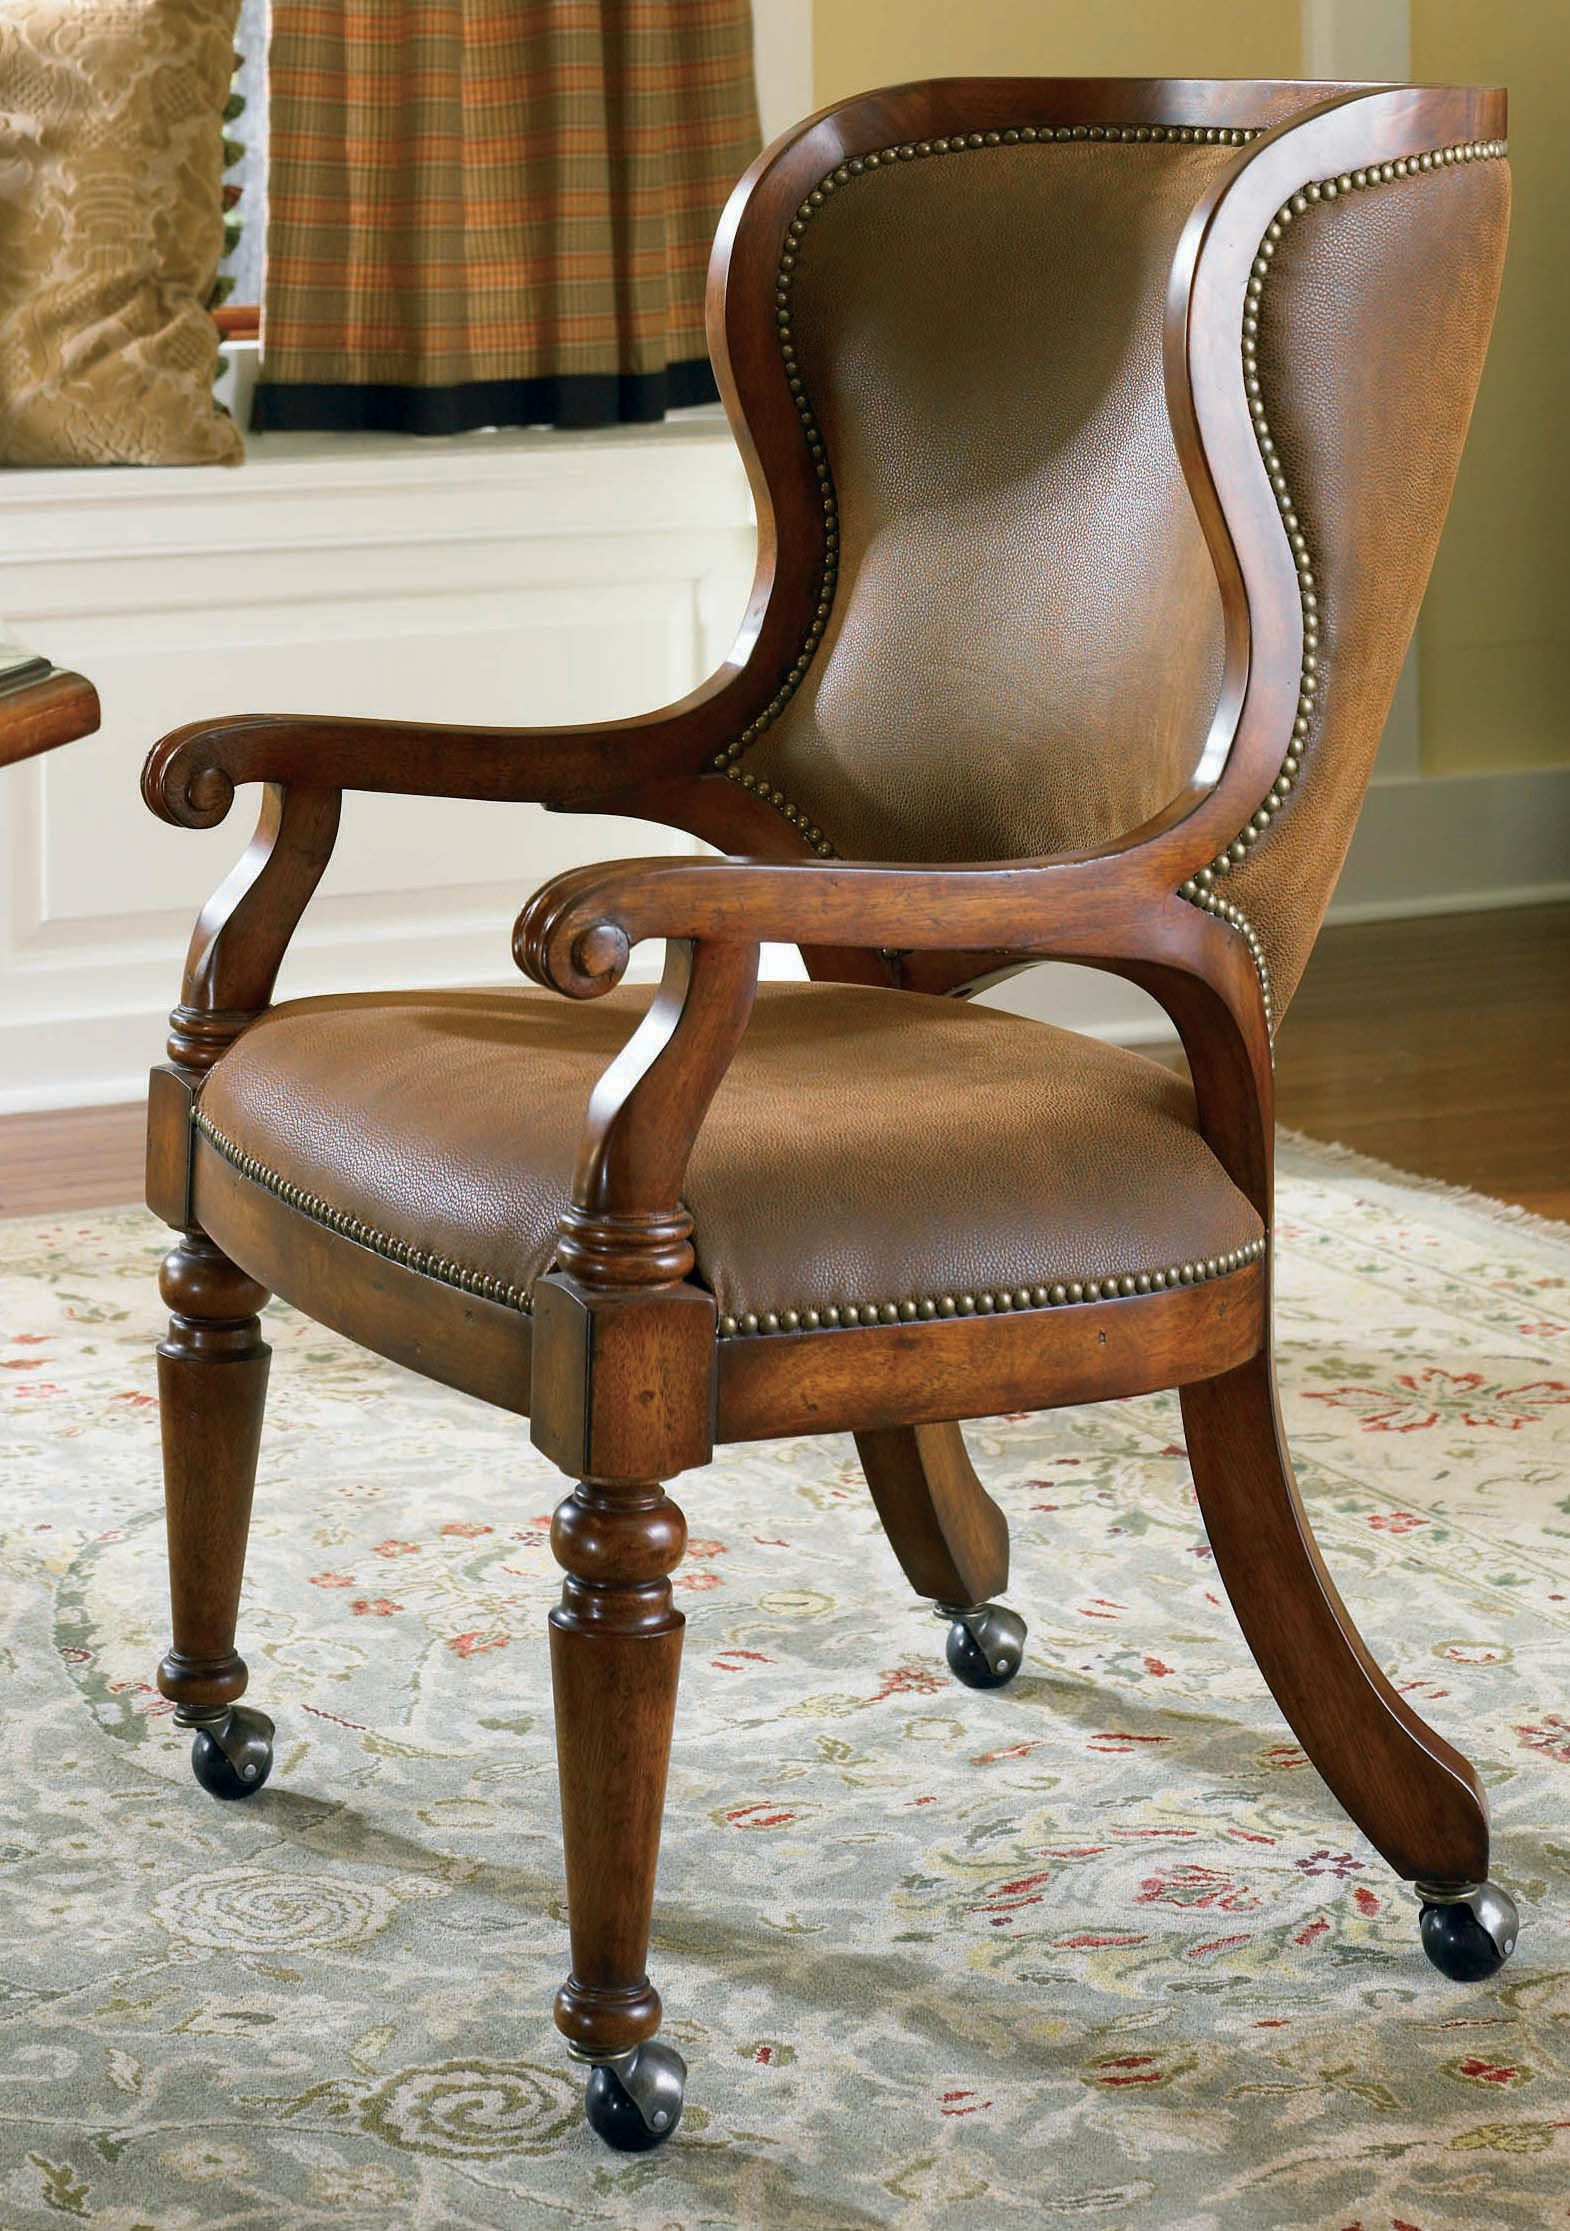 Charmant Hooker Furniture Waverly Place Tall Back Castered Game Chair 366 75 500